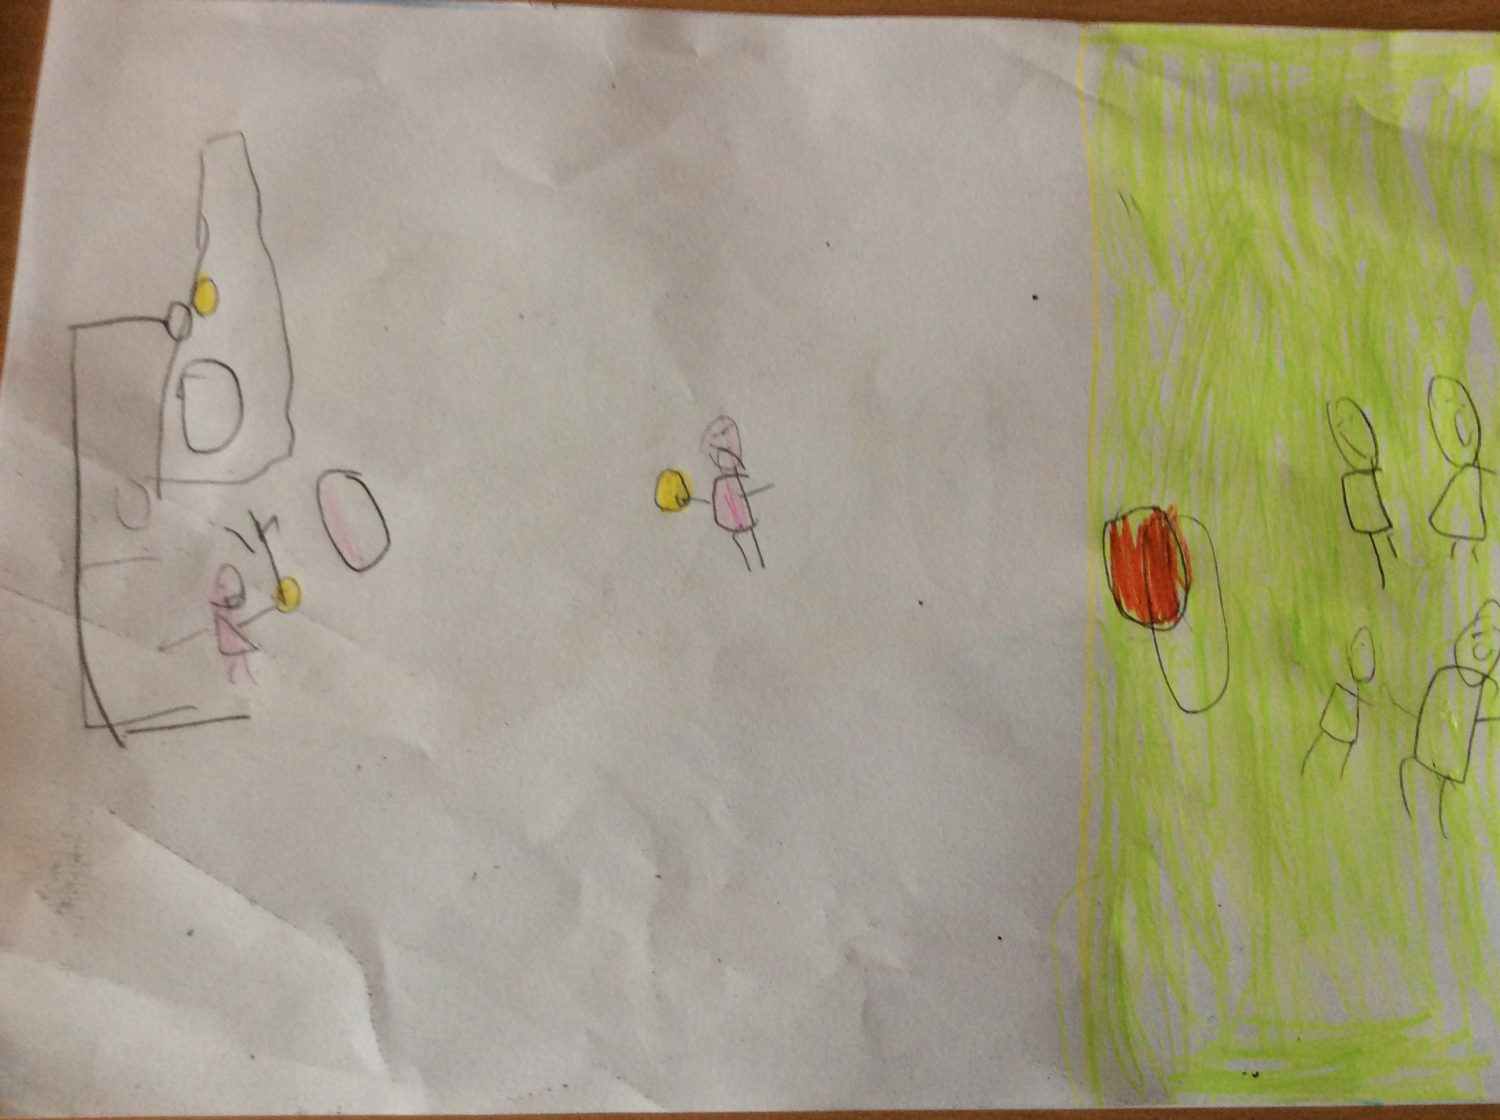 childrens drawing Wen joseph dident have a ball I giv him one.